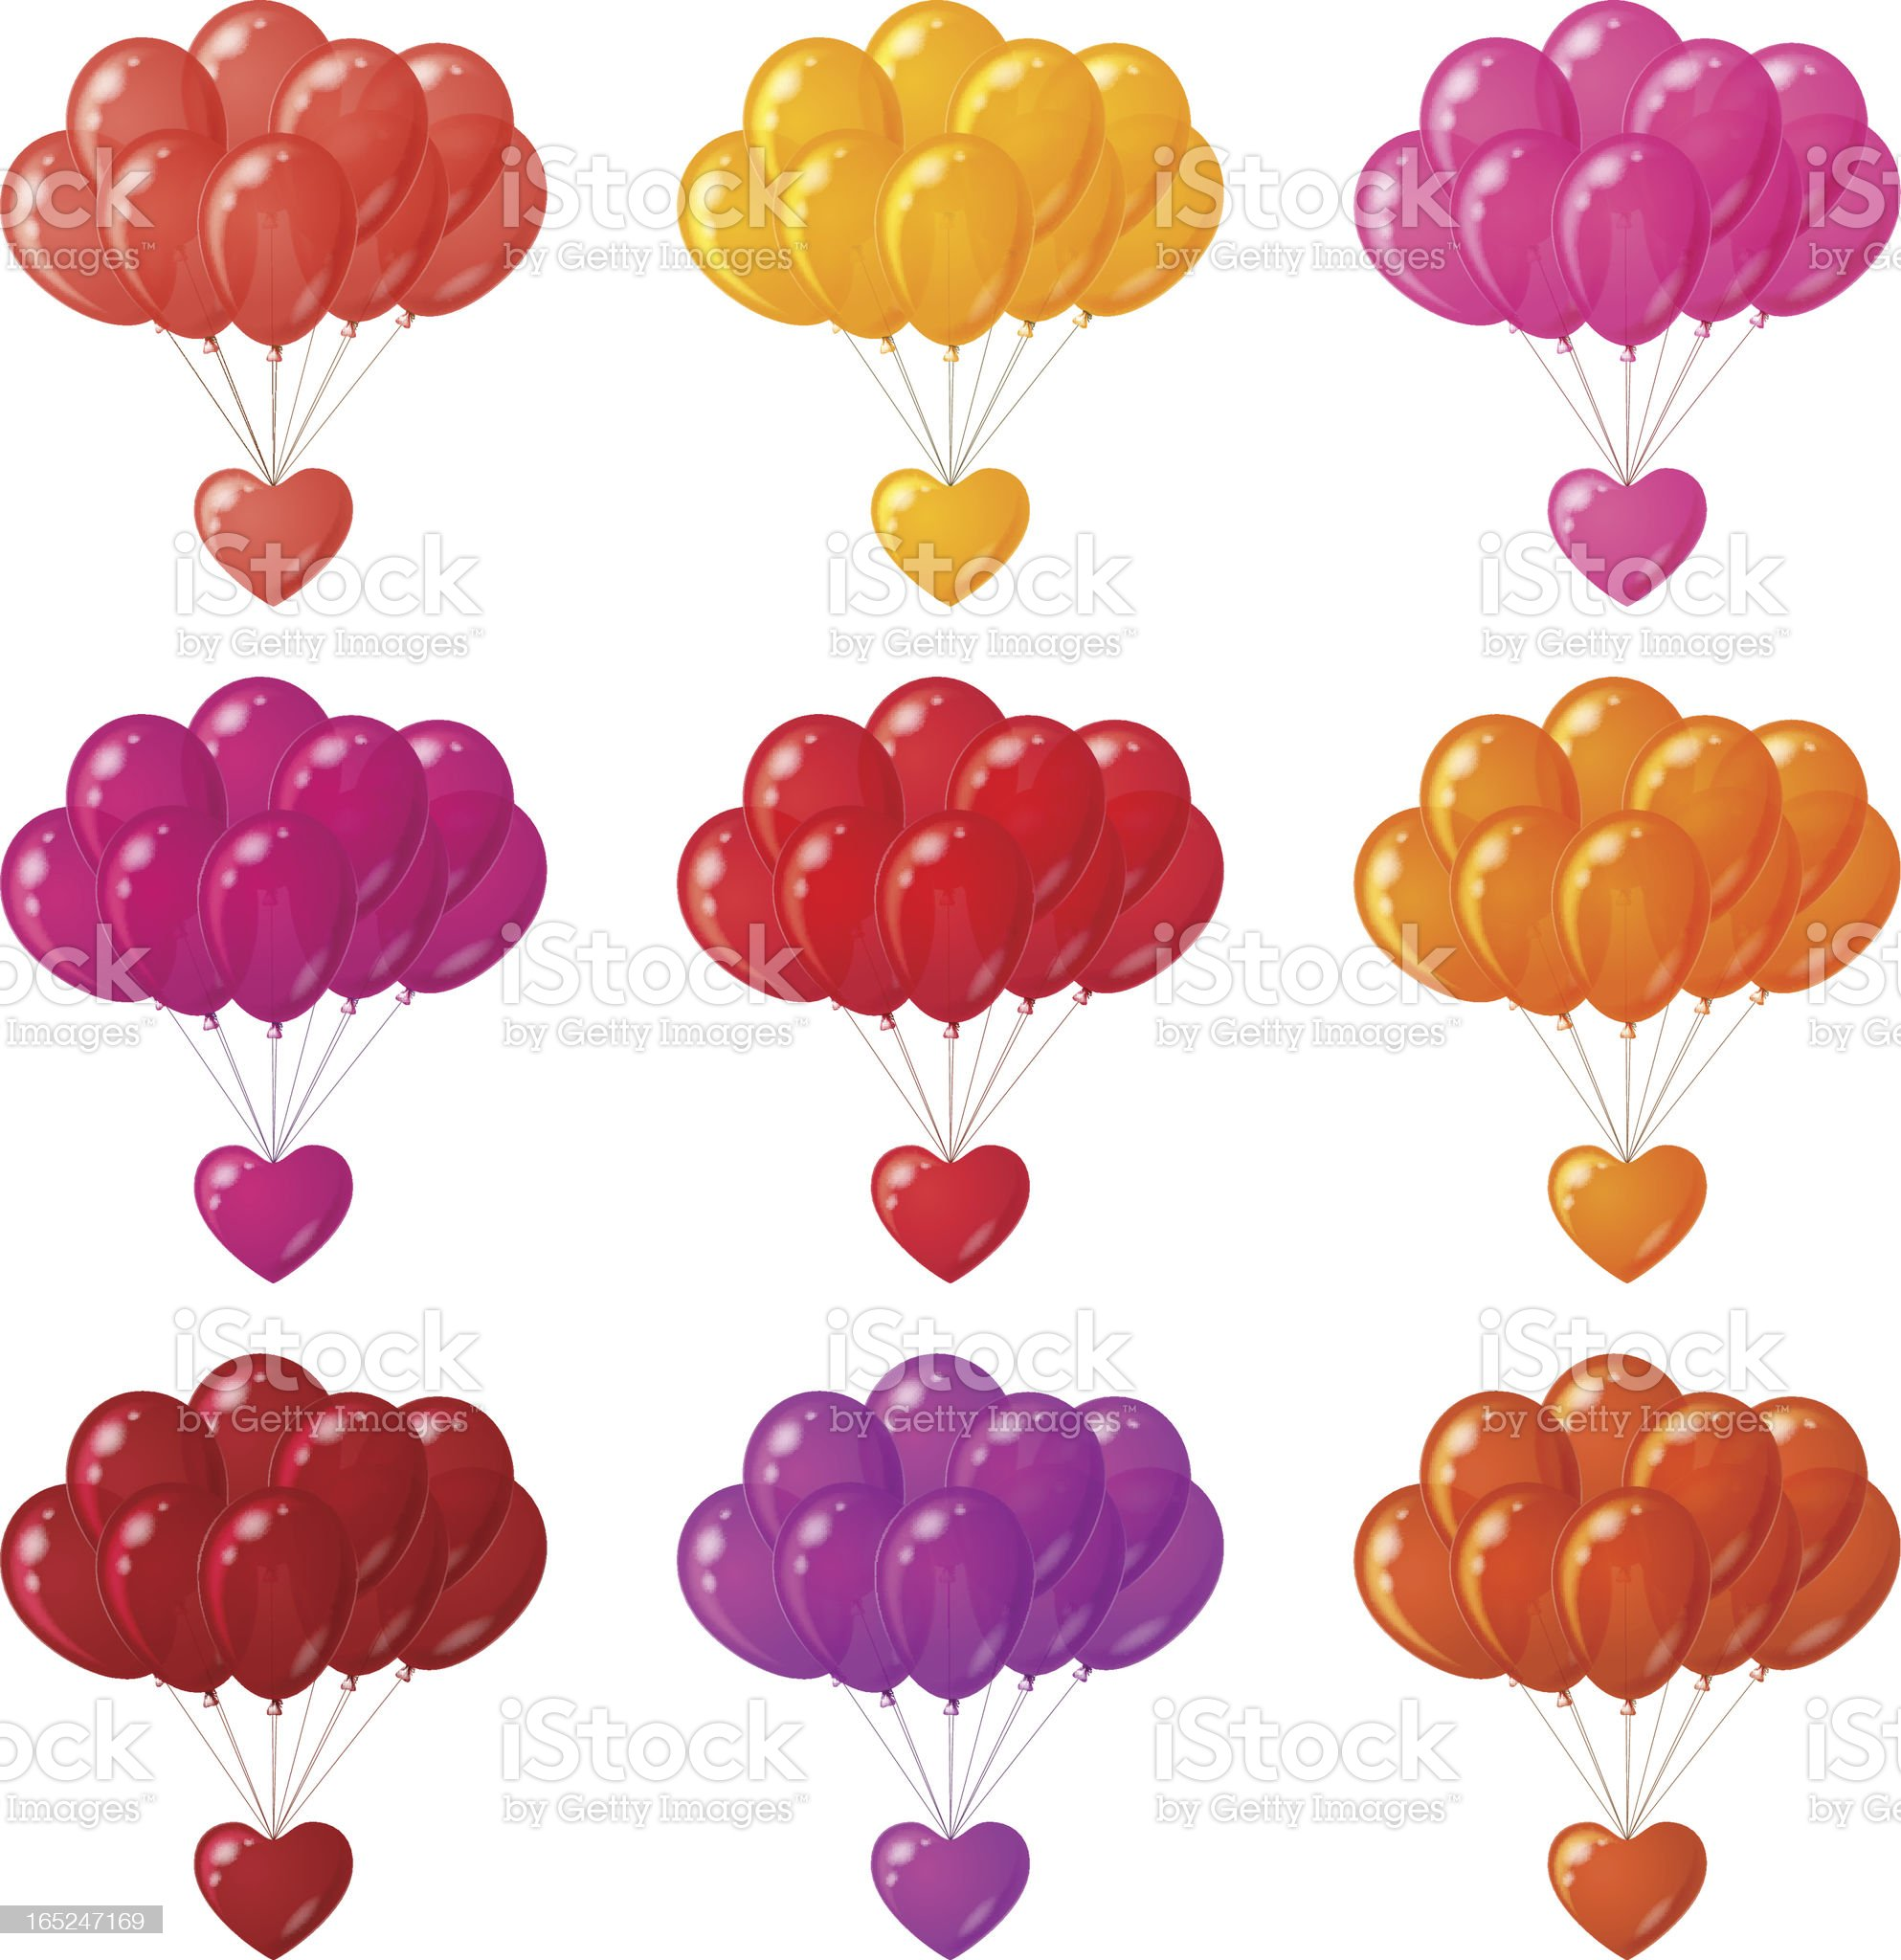 Balloons bunches with hearts, set royalty-free stock vector art